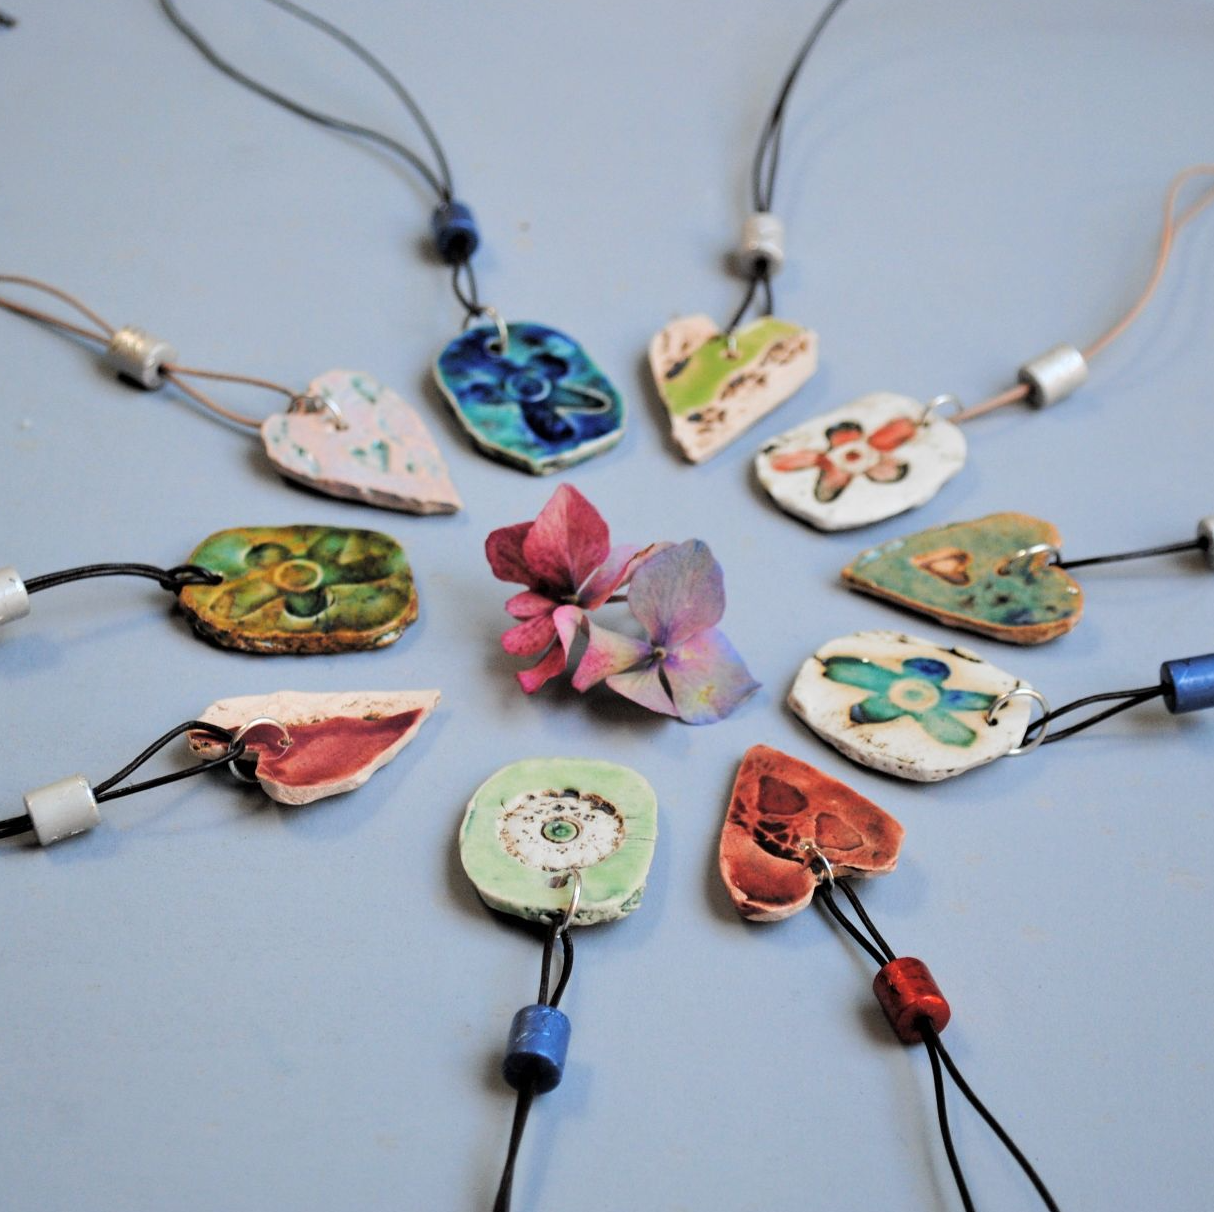 Handmade ceramic jewellery including pendants, earrings, cufflinks and bracelets.